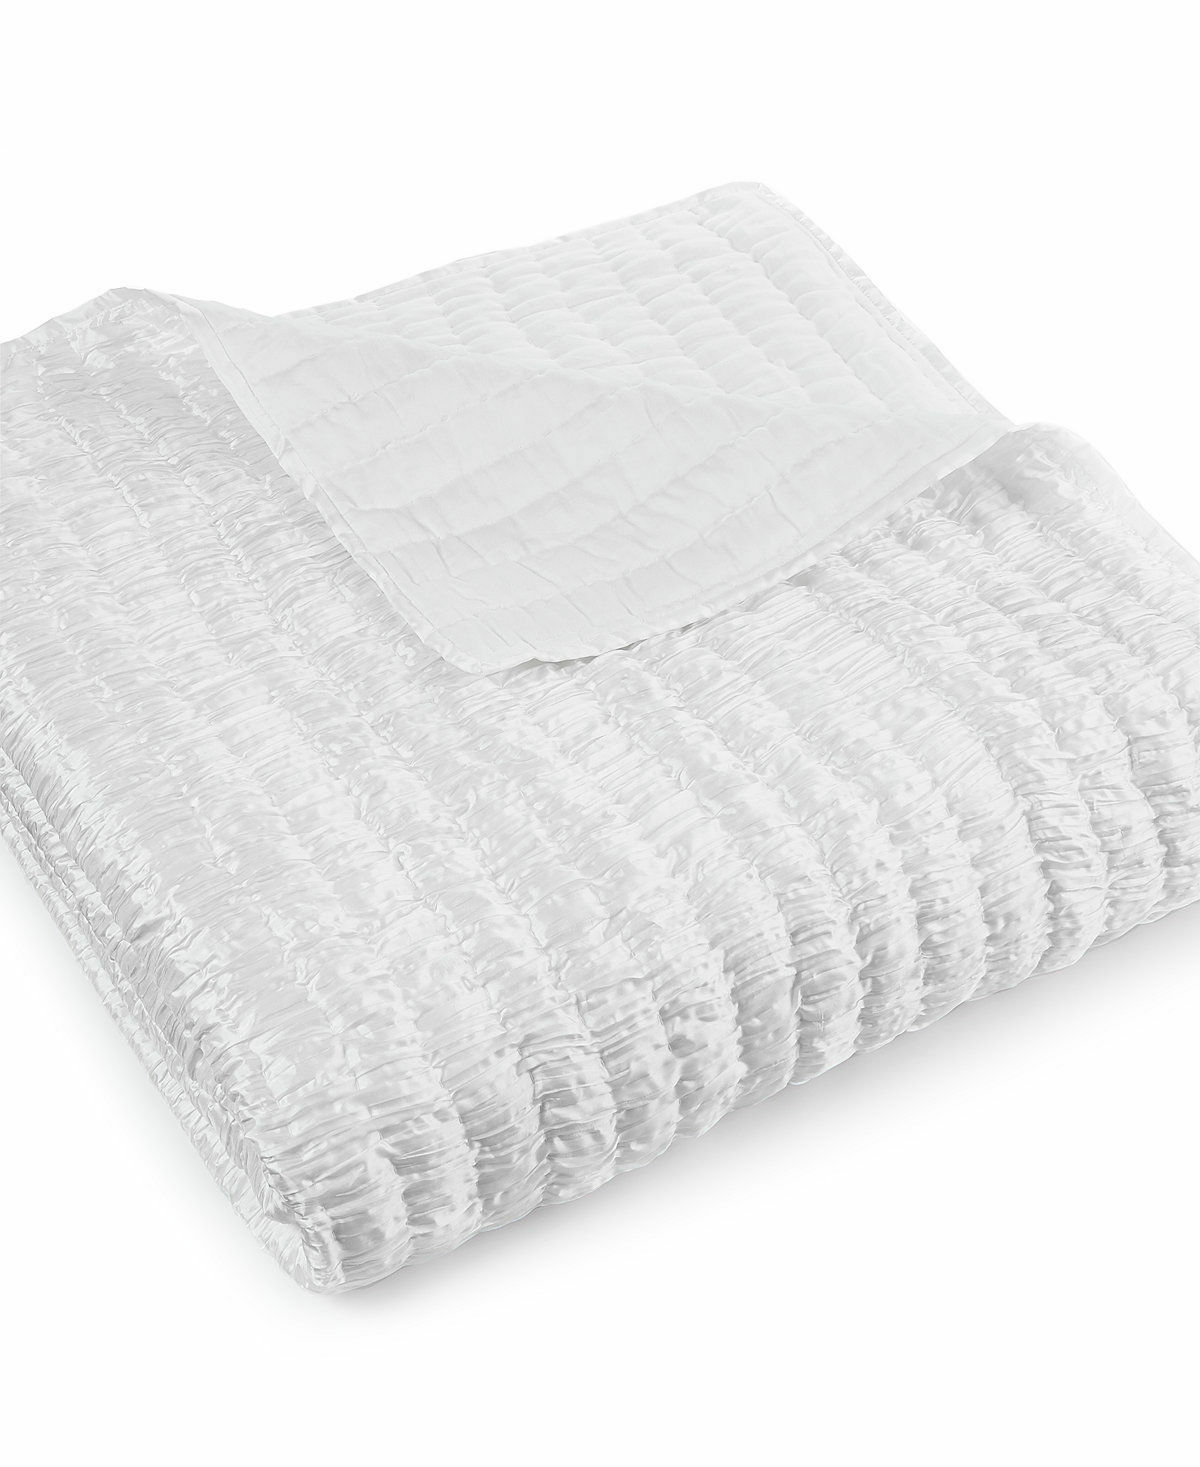 New Hotel Collection Finest Crescent White Crinkle King Coverlet  500